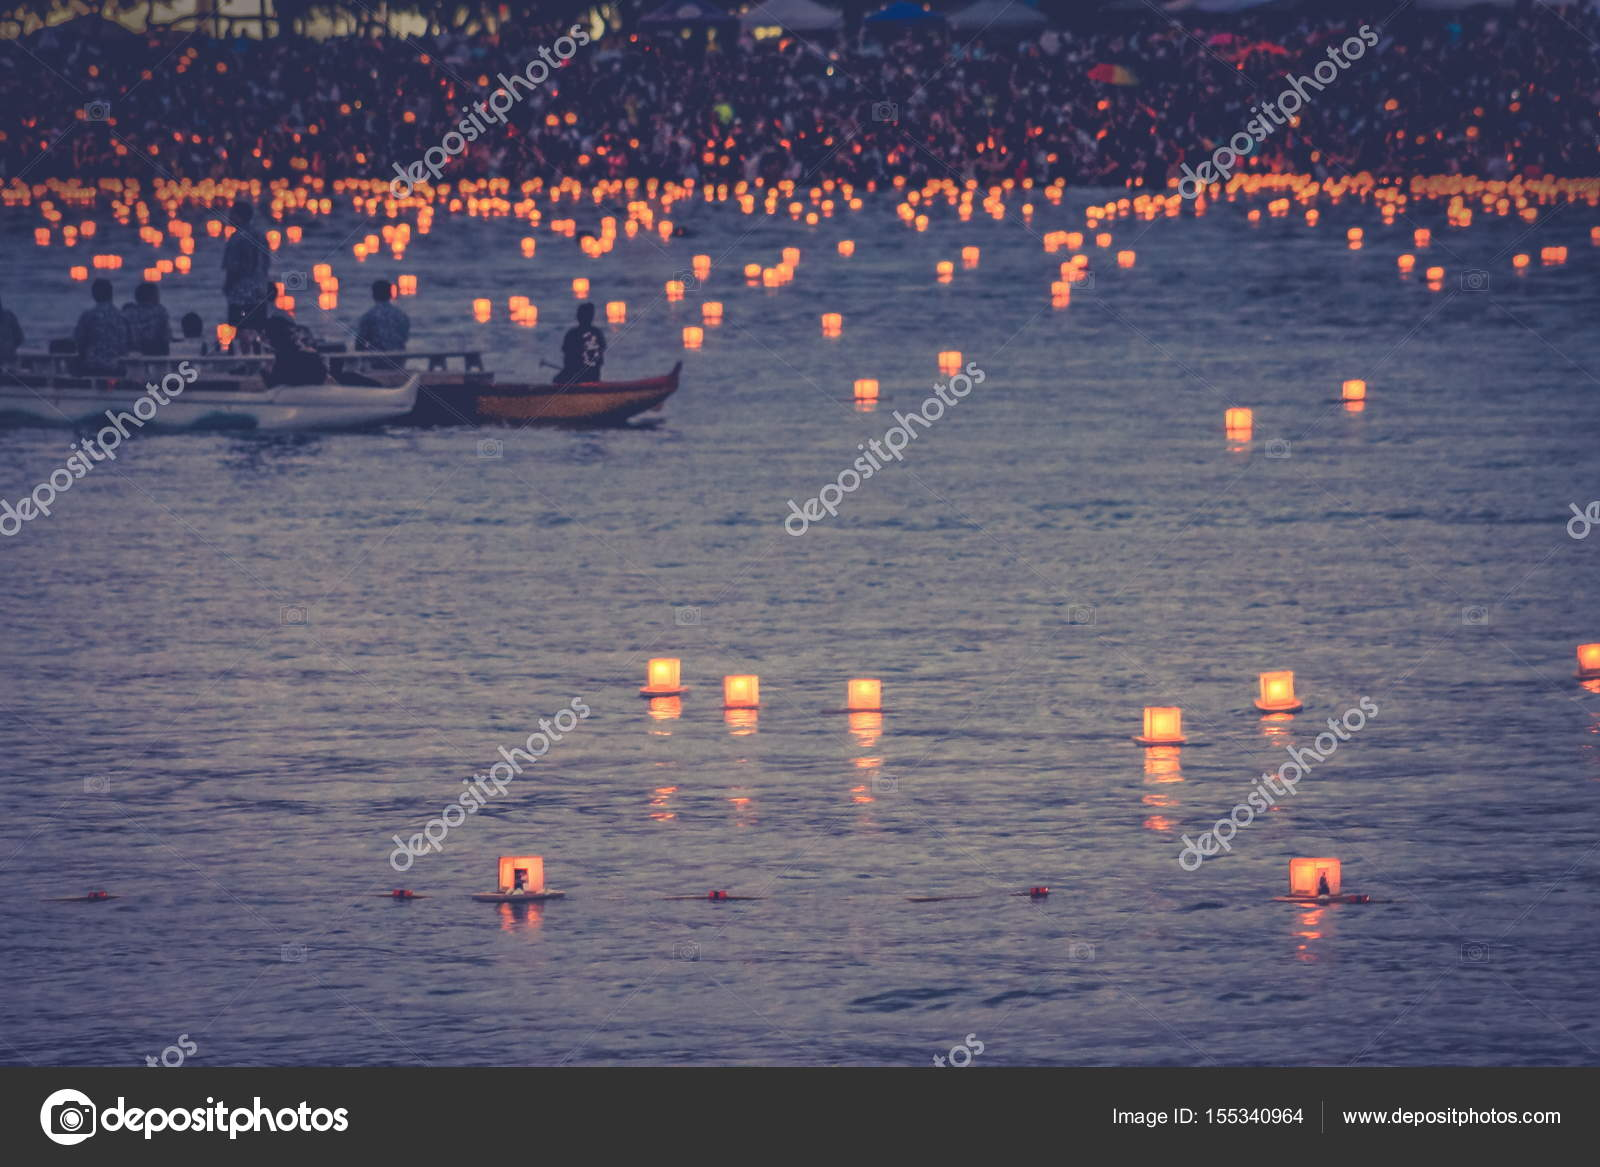 memorial day lantern floating festival held at ala moana beach to